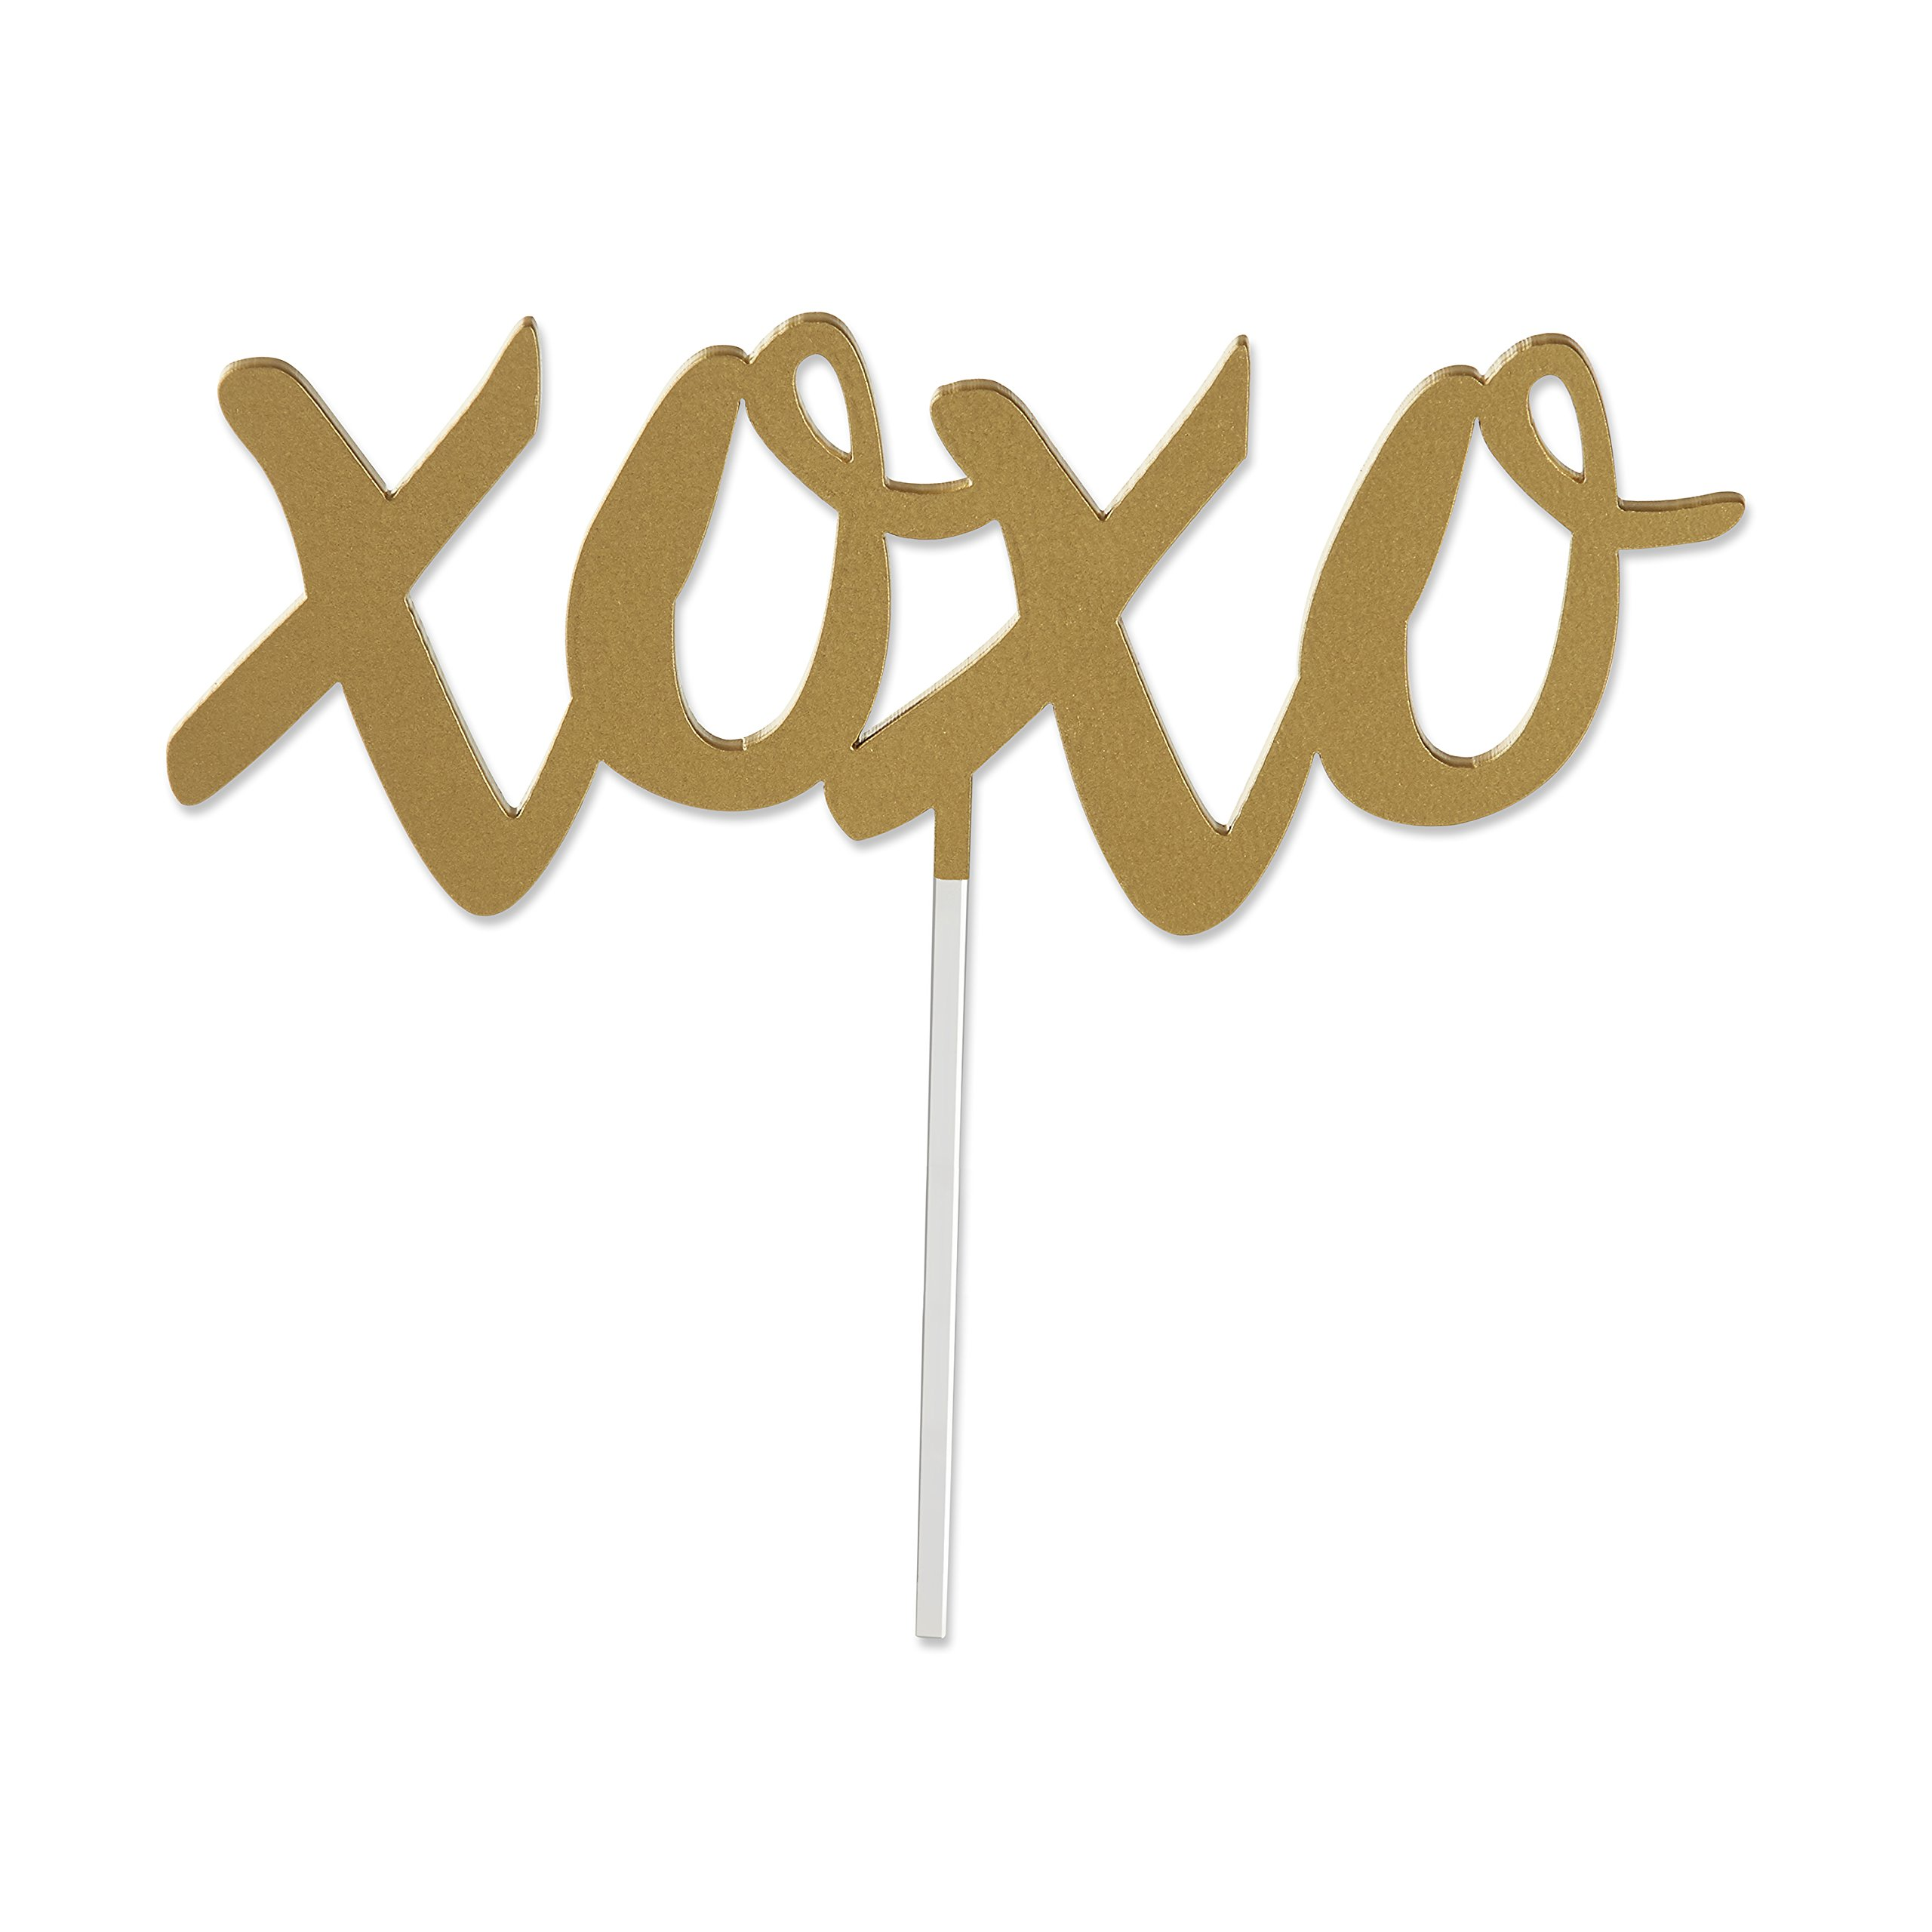 8 Gold XOXO Cake Toppers